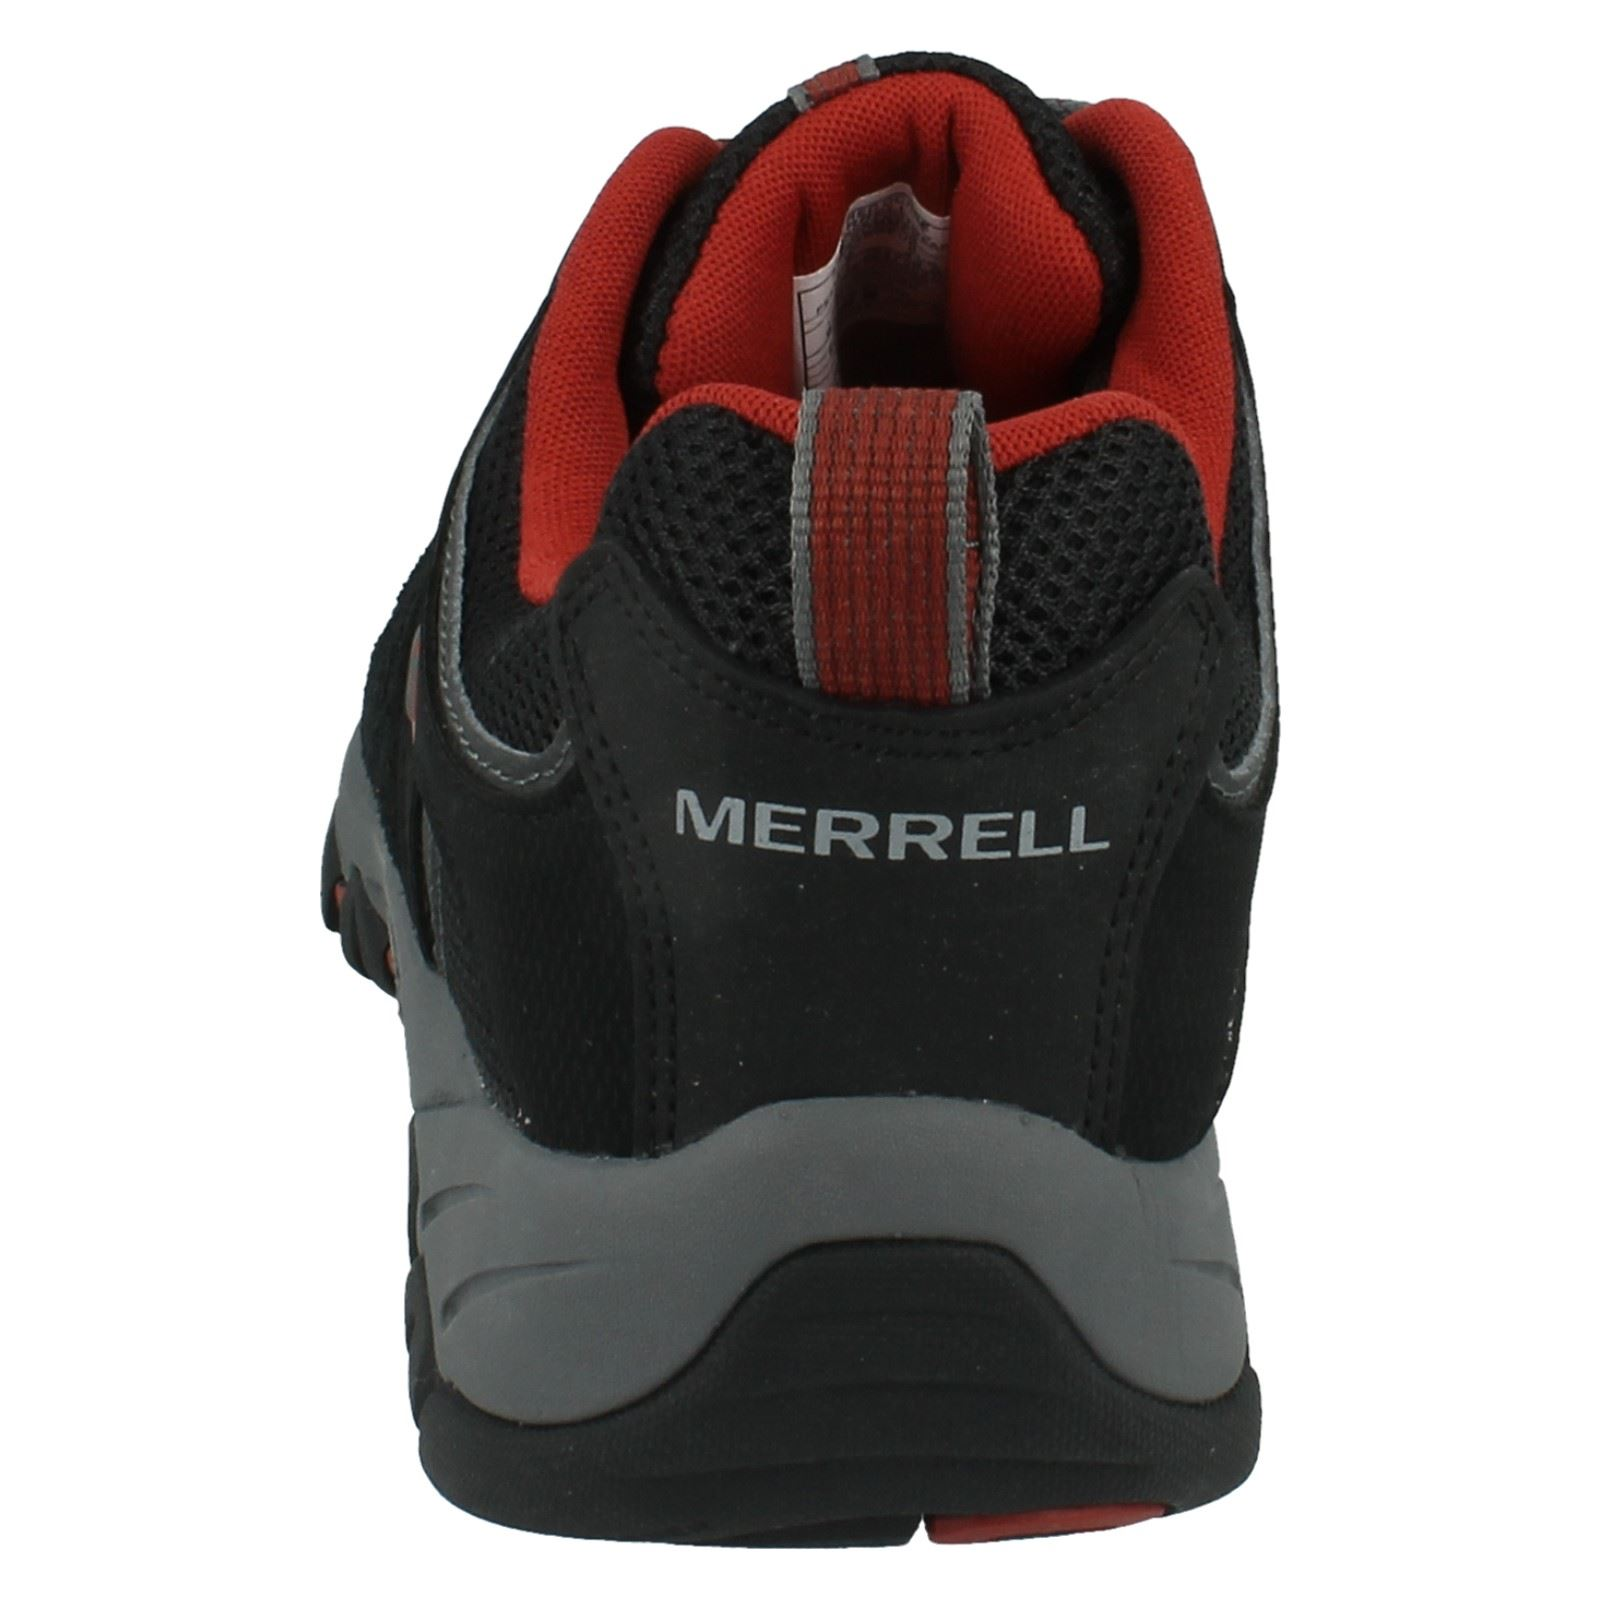 Herren Merrell Casual Schuhes The - Style - The Ridgepass 983523